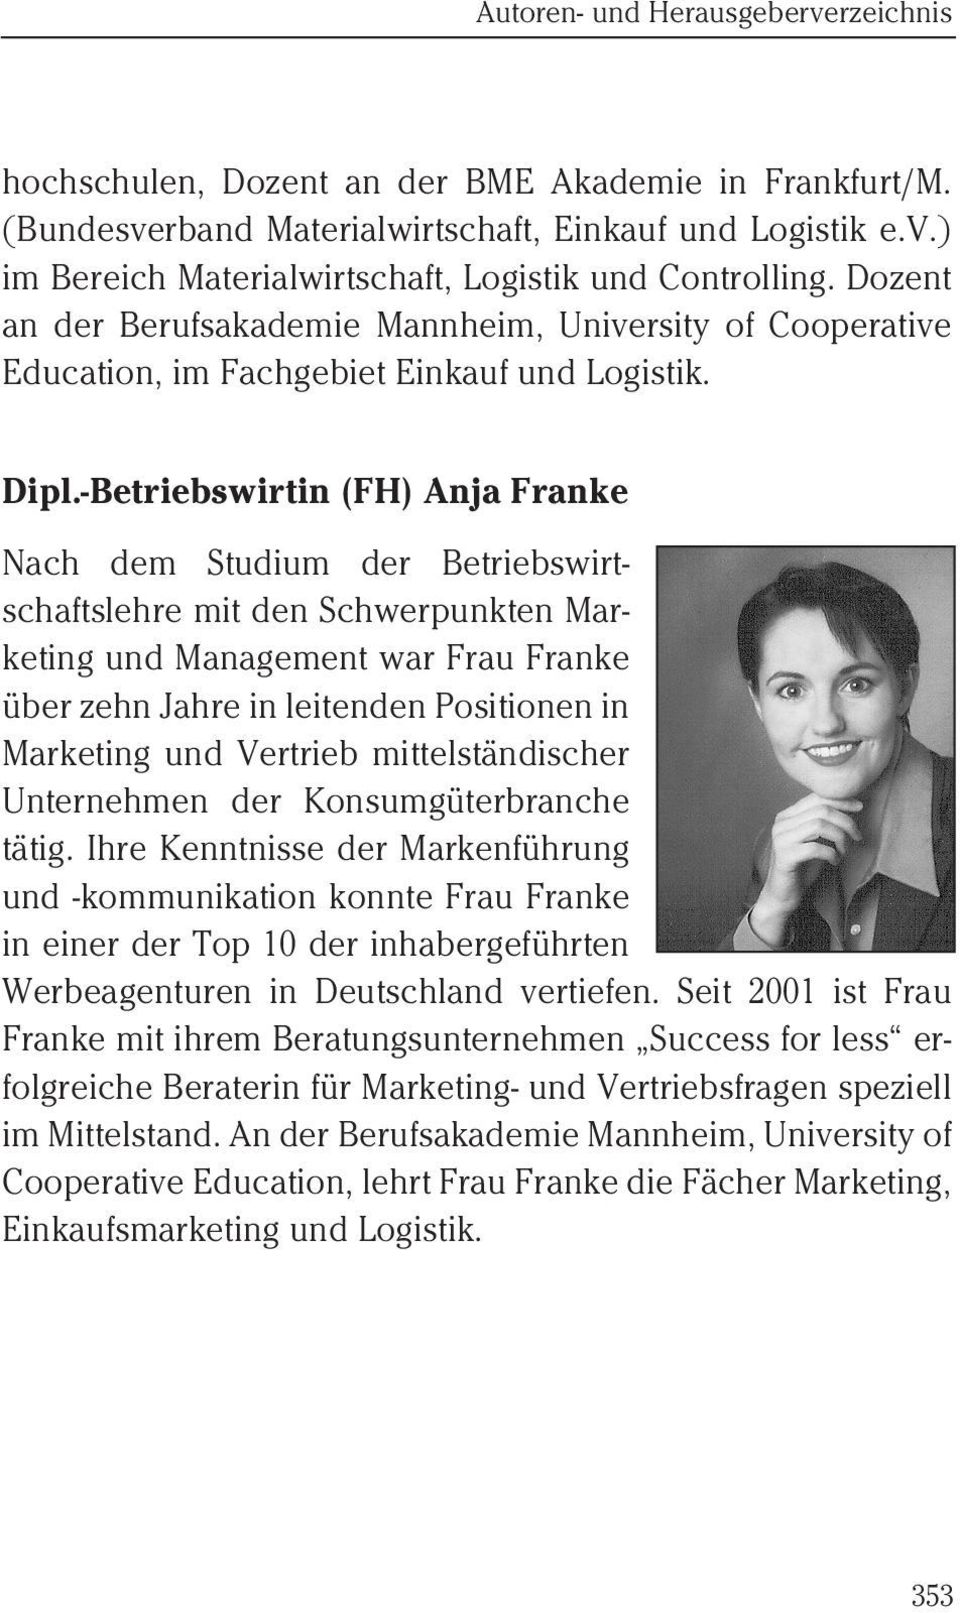 -Betriebswirtin (FH) Anja Franke Nach dem Studium der Betriebswirtschaftslehre mit den Schwerpunkten Marketing und Management war Frau Franke über zehn Jahre in leitenden Positionen in Marketing und